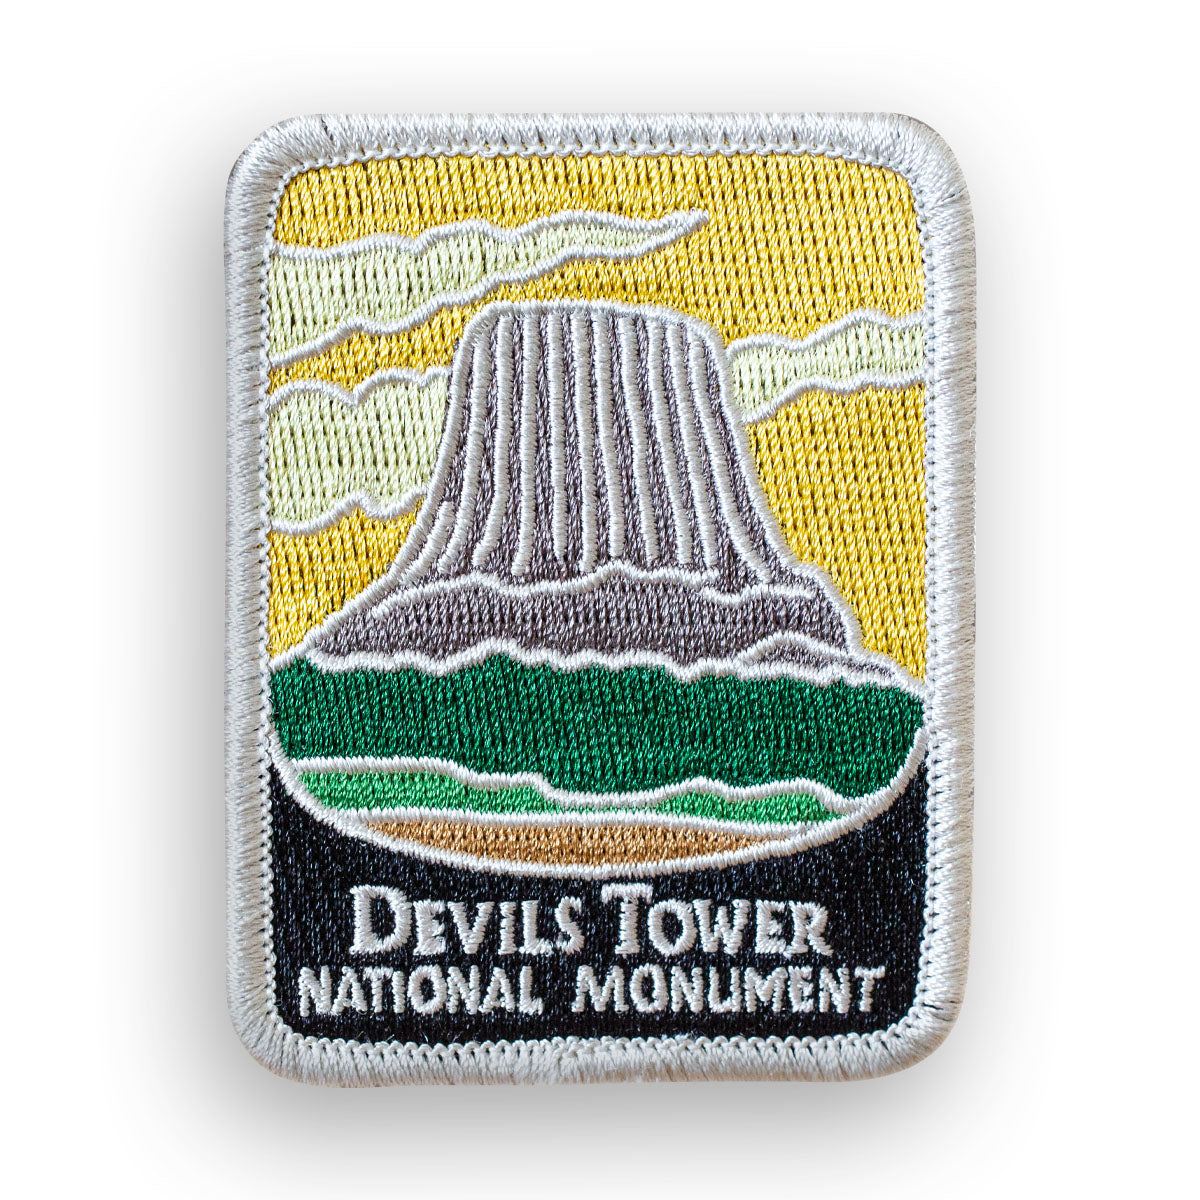 Devils Tower National Monument Traveler Patch